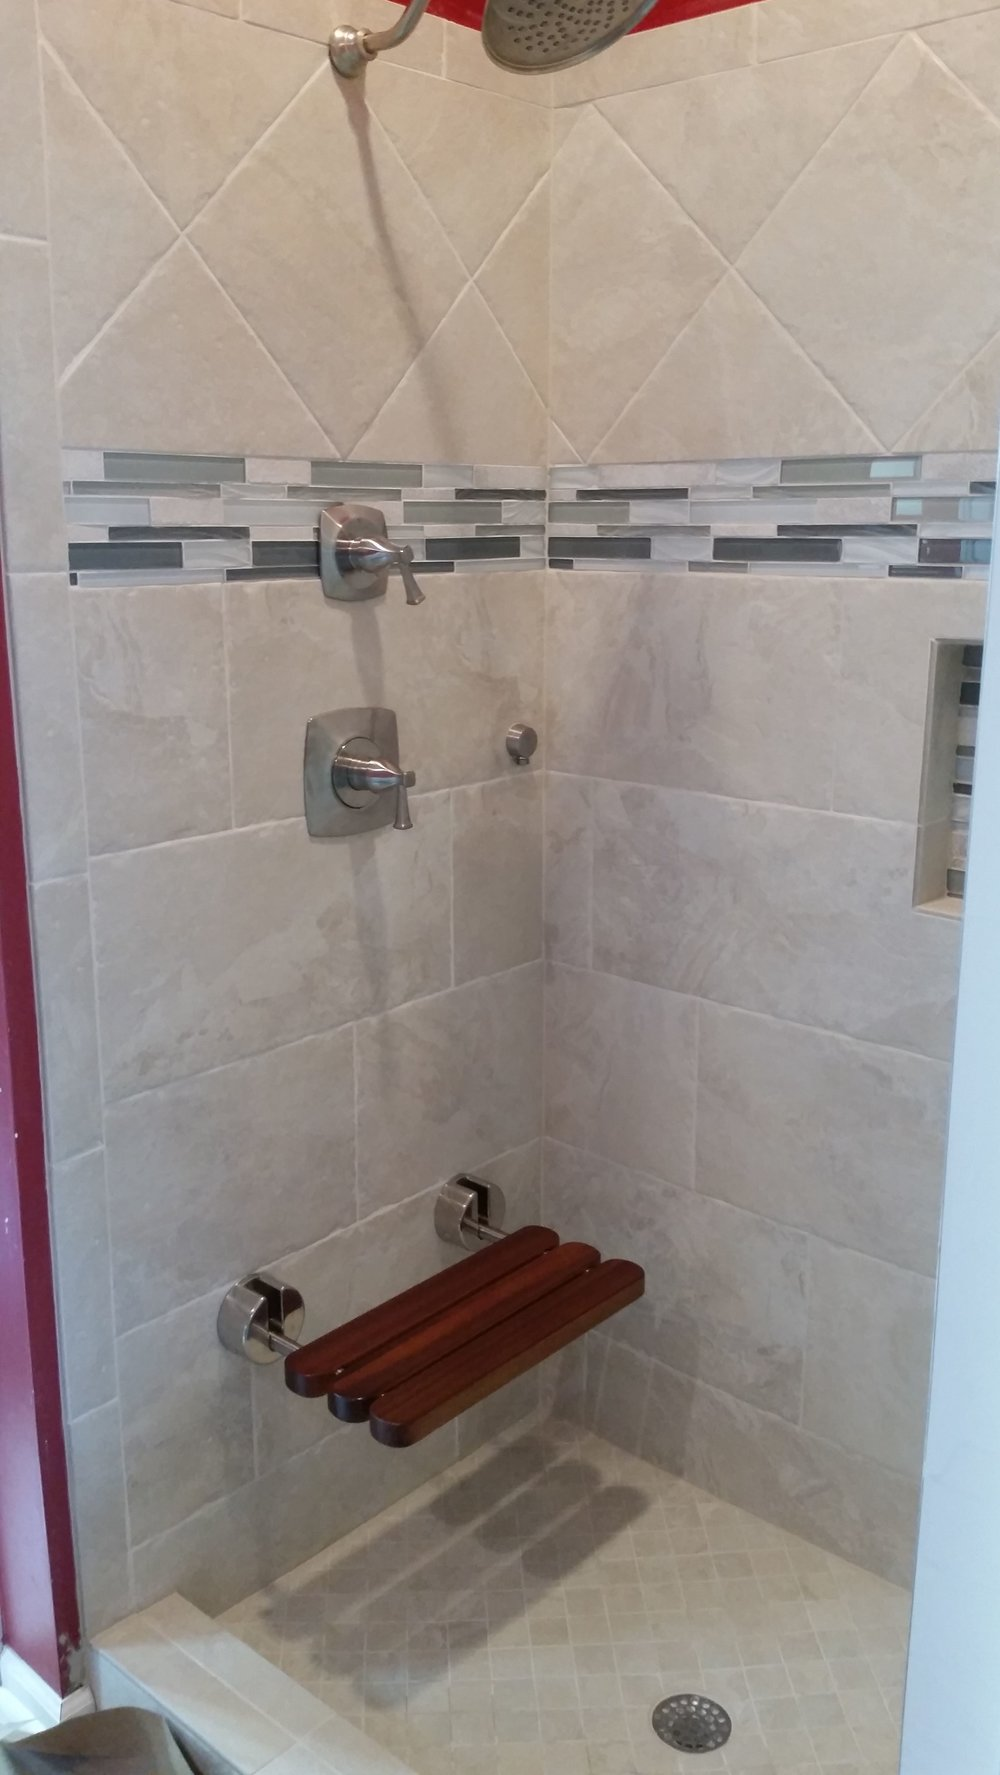 Tiled Shower & glass tile accents